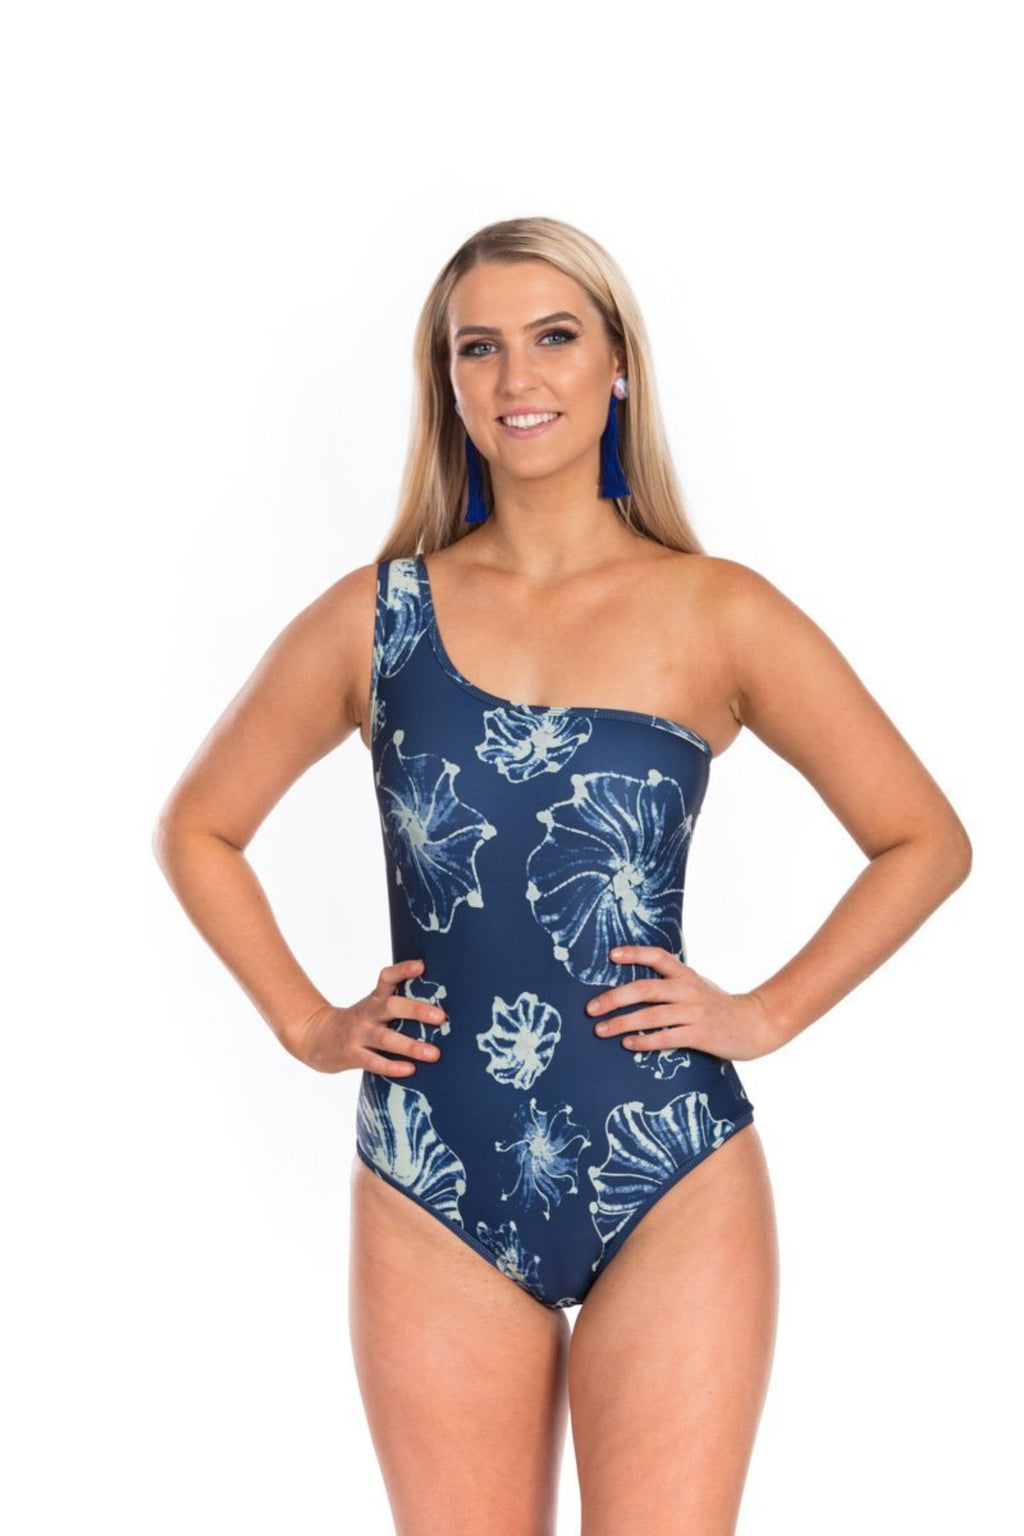 Sarah One Piece Swimwear Ethical Sustainable Vegan Organic Australian fashion womens clothes